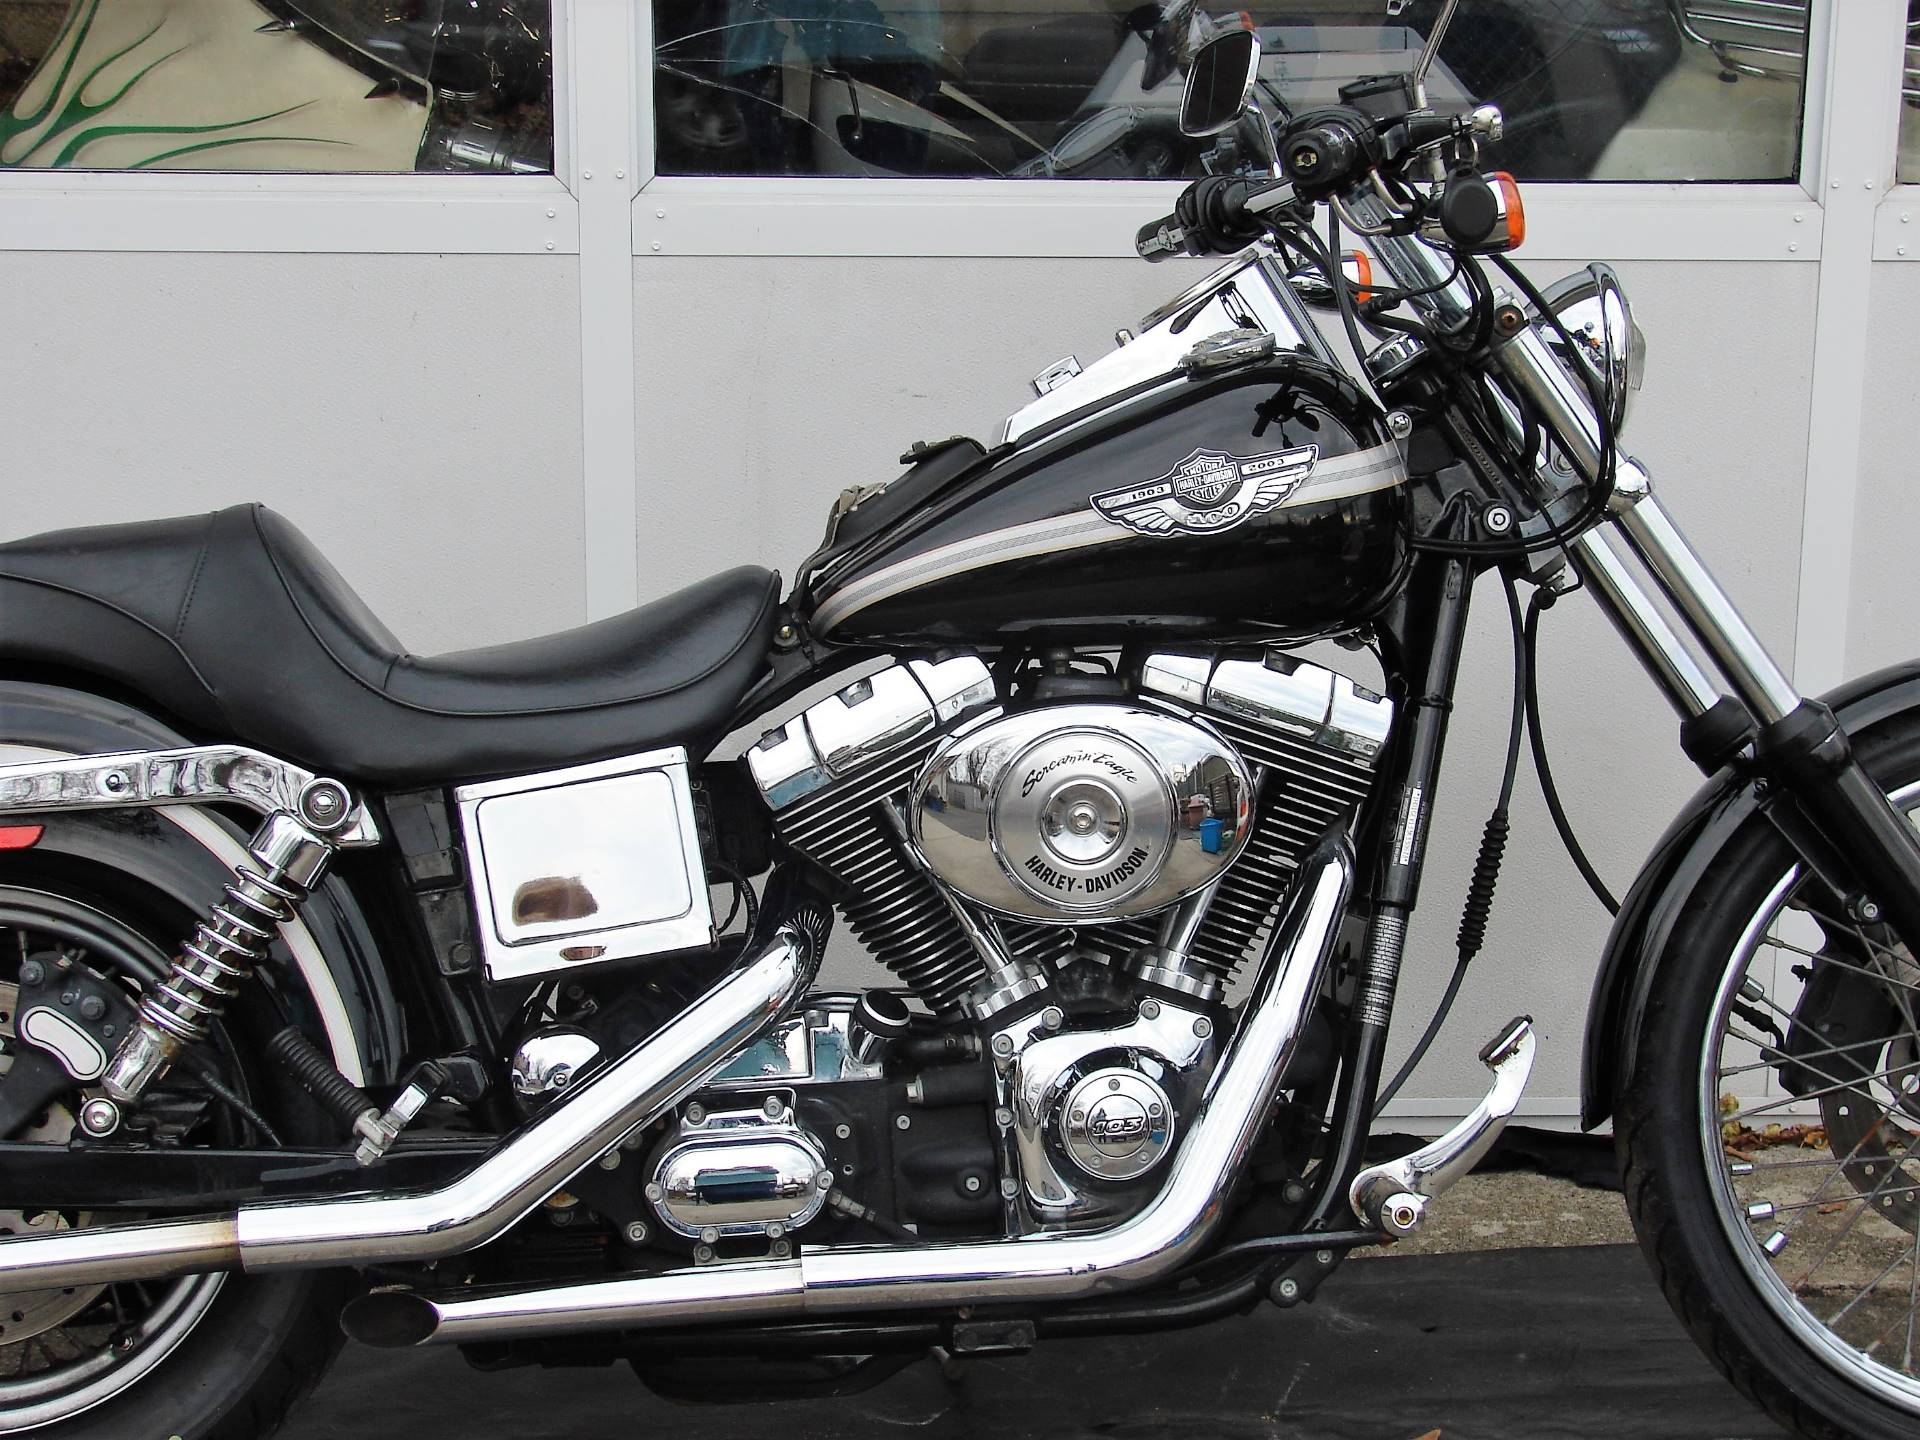 2003 Harley-Davidson Dyna Wide Glide in Williamstown, New Jersey - Photo 2